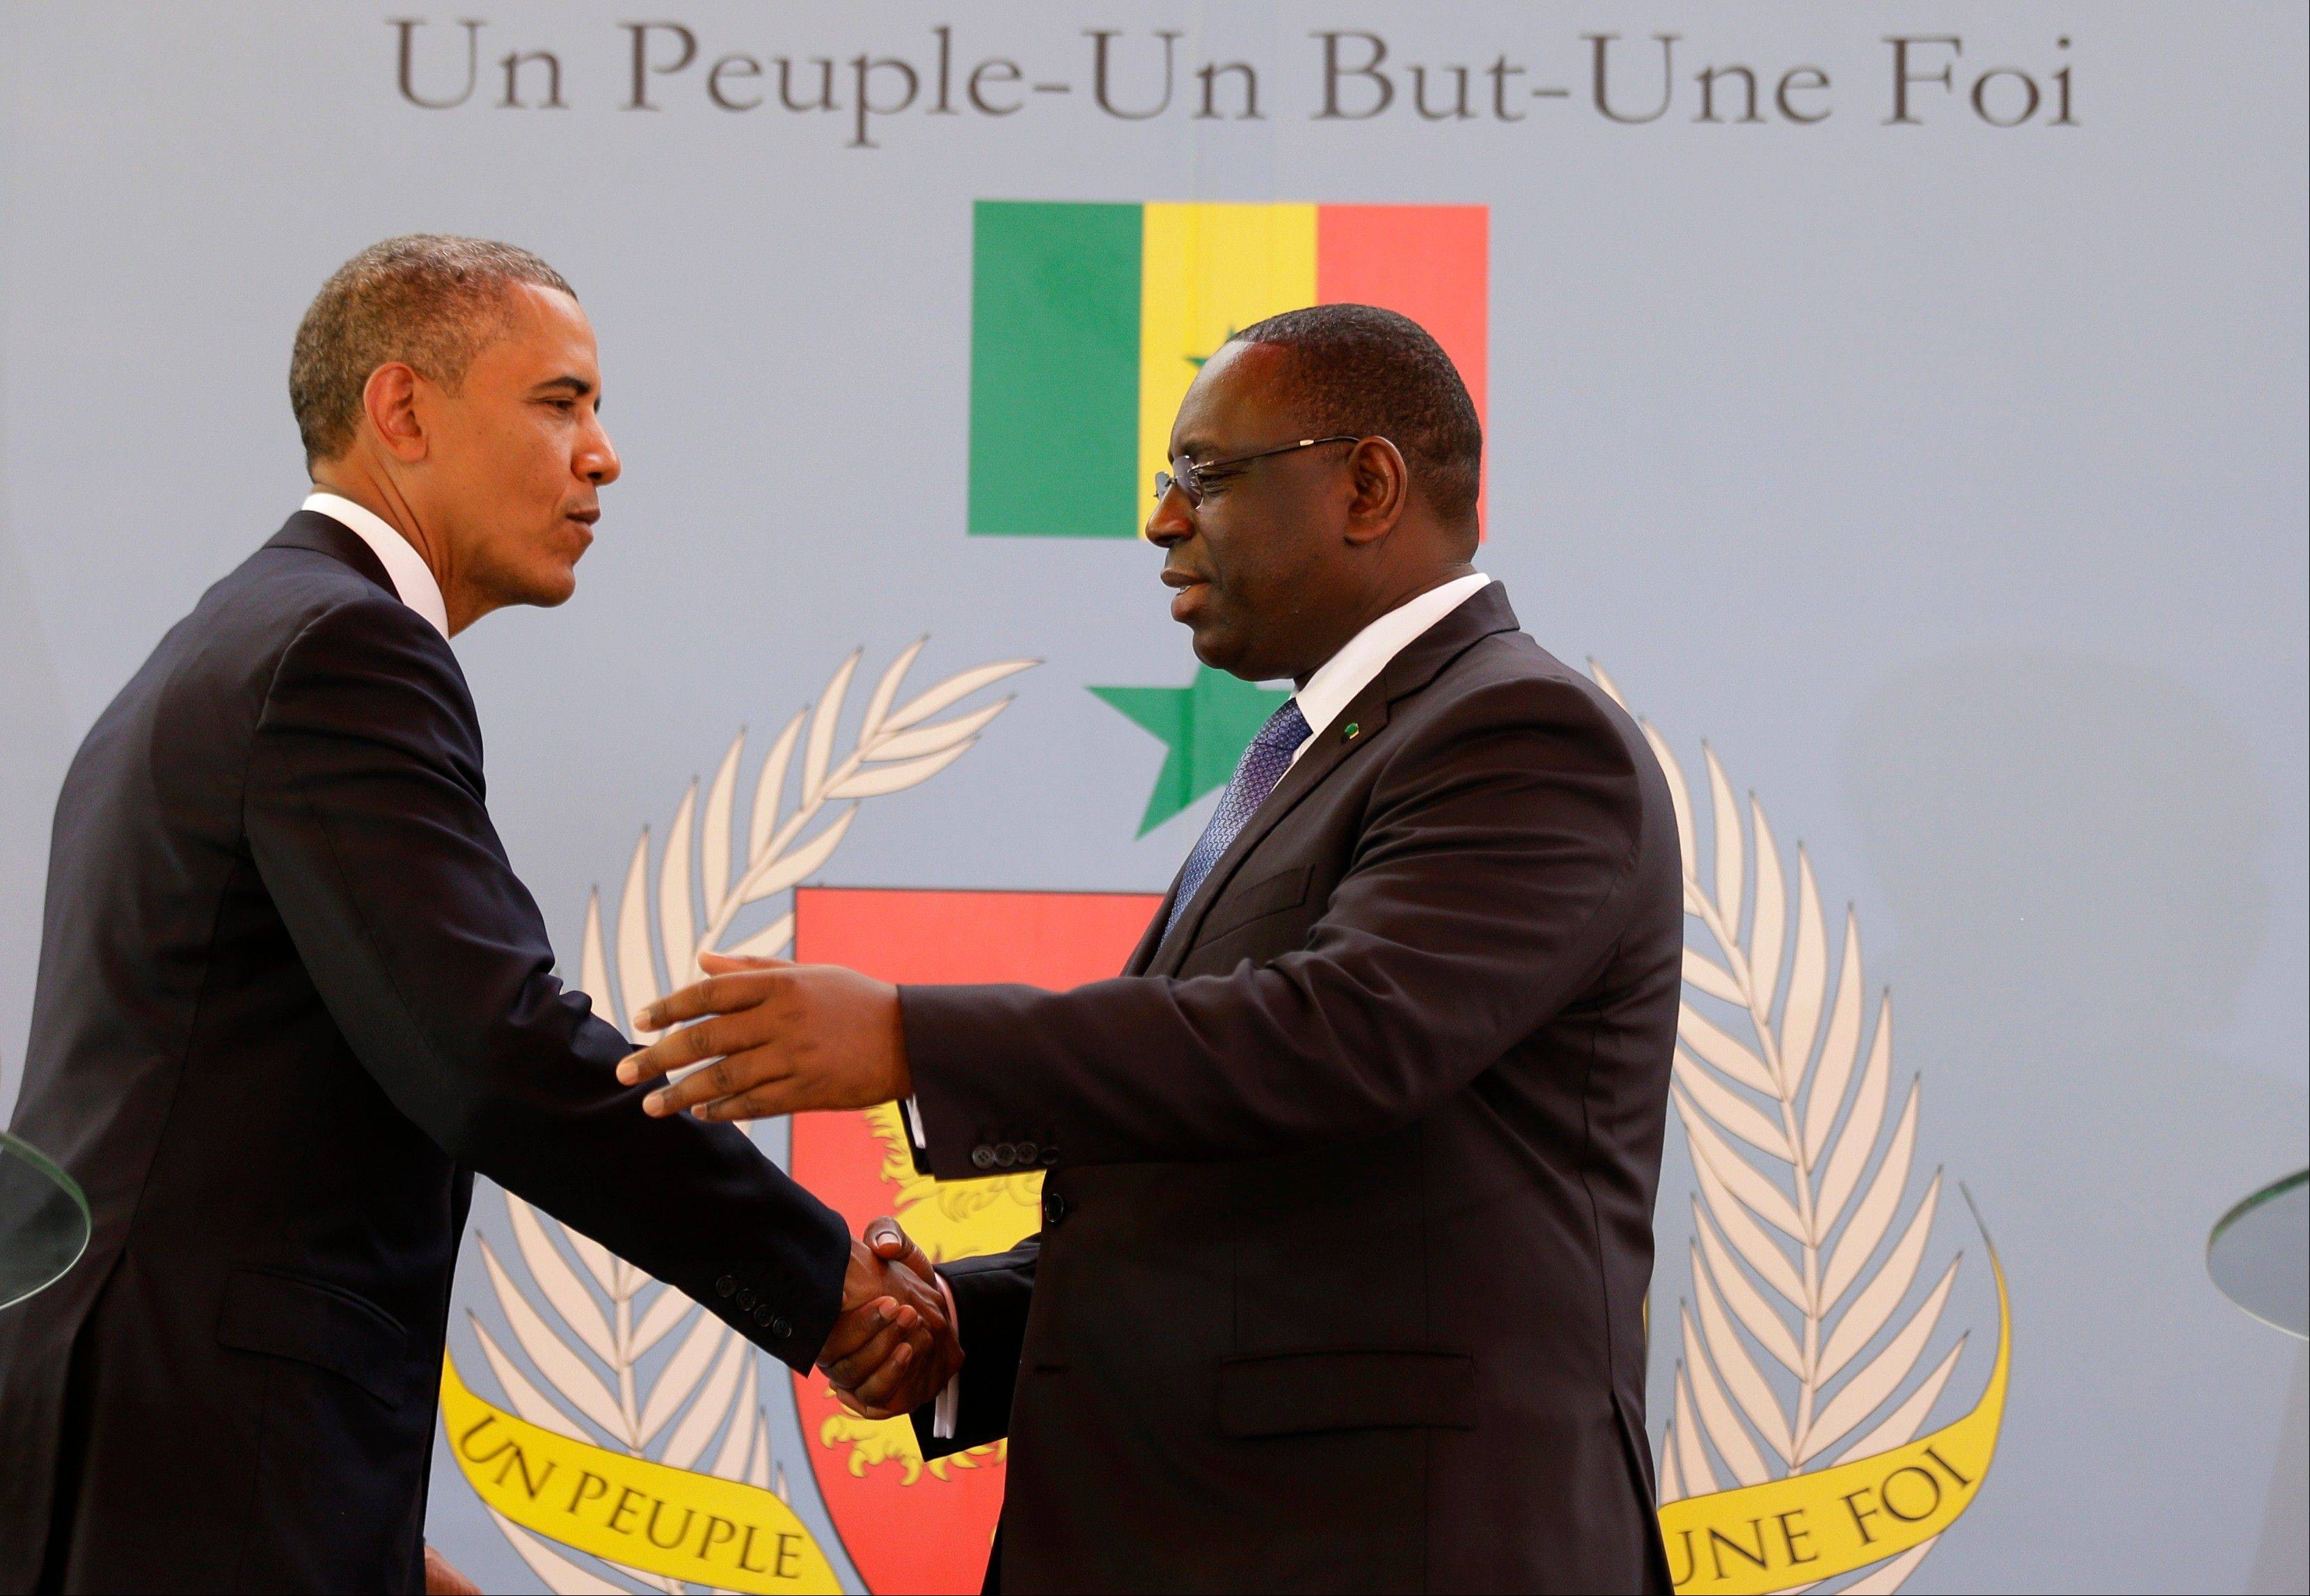 U.S. President Barack Obama, left, shakes hands with Senegalese President Macky Sall after a joint press conference at the presidential palace in Dakar, Senegal, Thursday, June 27, 2013. Senegal�s national slogan, printed on the wall behind them, reads �One People, One Goal, One Faith.�